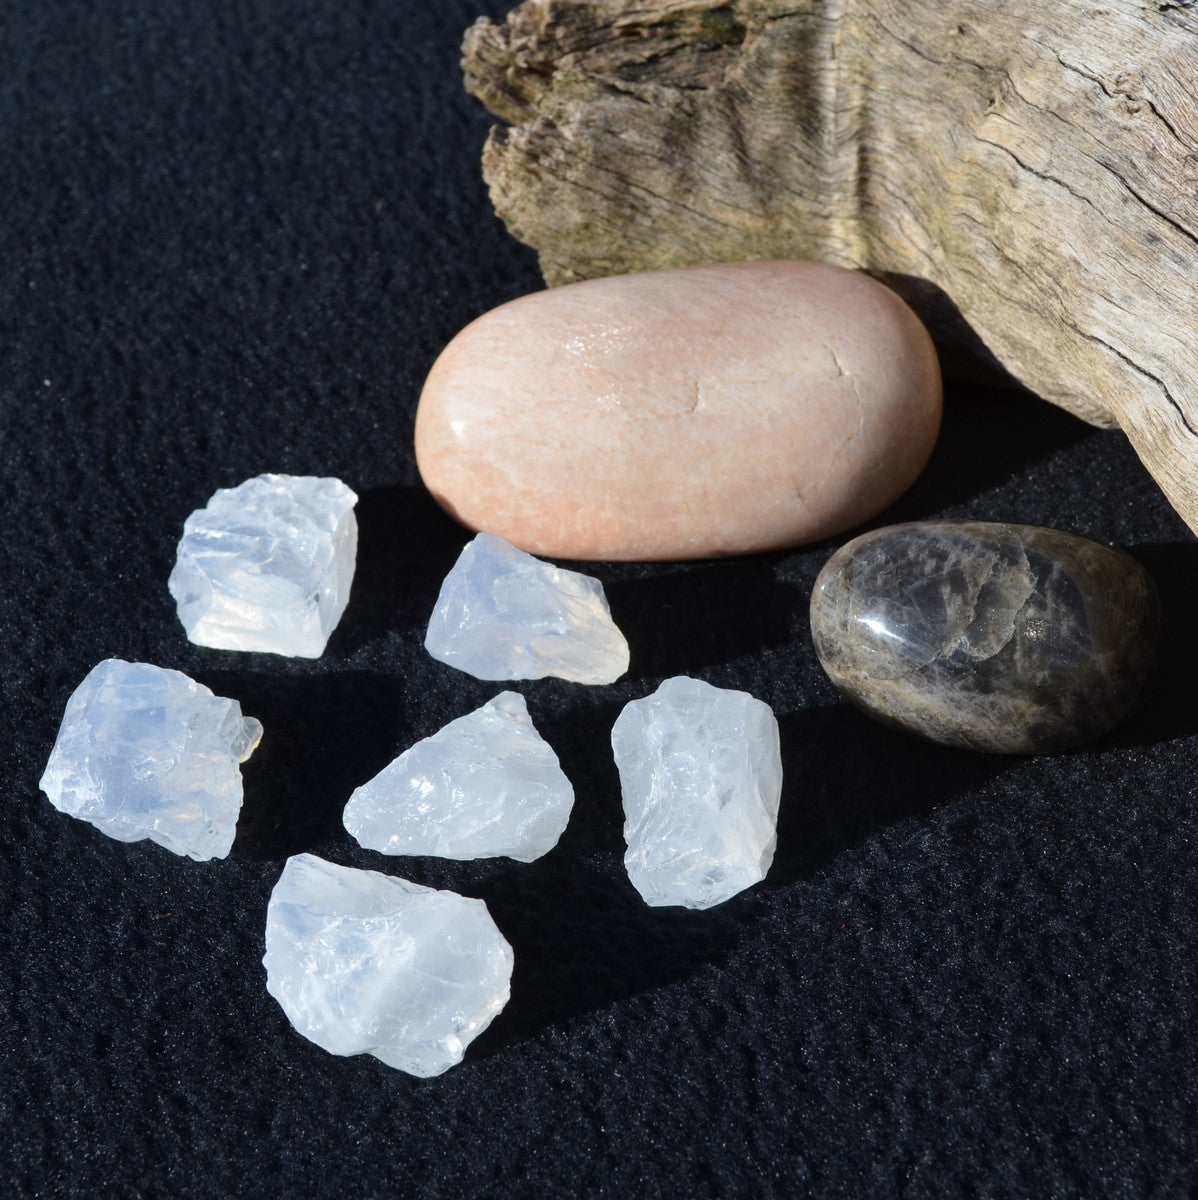 Moonstone Lovers Bundle Black Moonstone Peach Moonstone - Buy Now at Illiom Crystals - Now with Afterpay